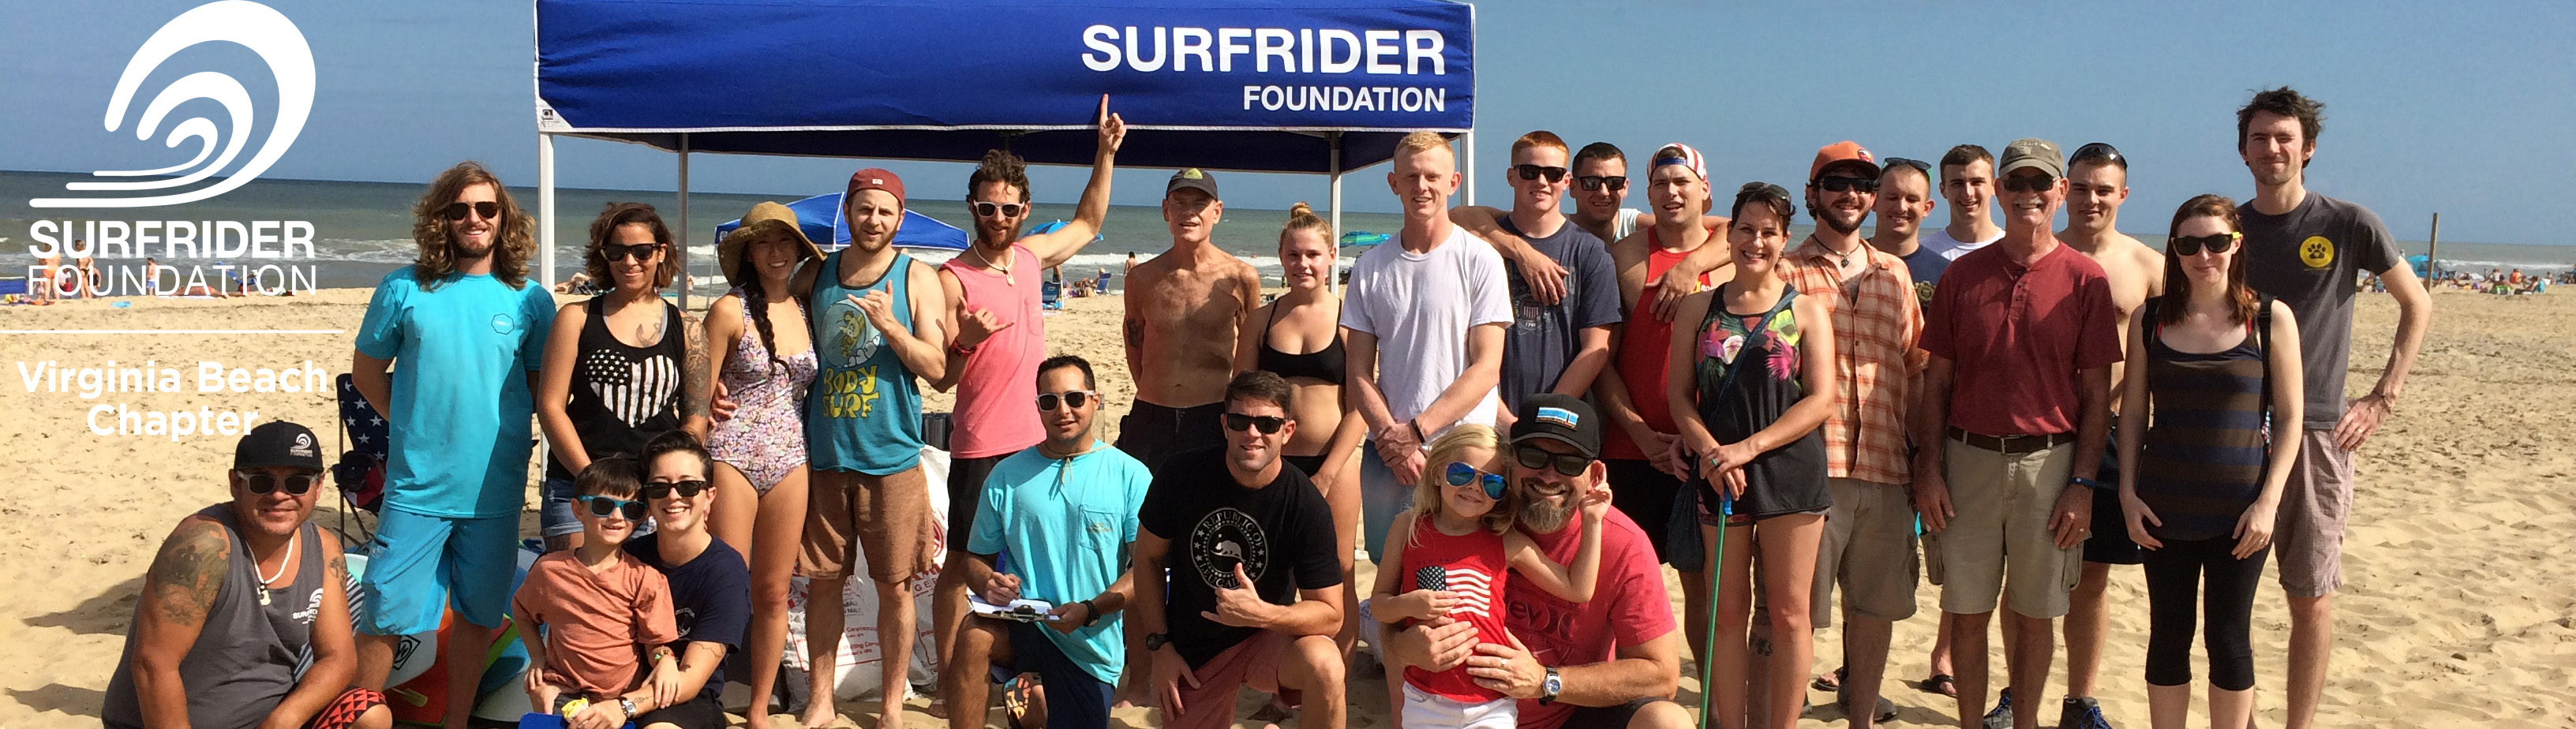 Surfrider Foundation Virginia Beach